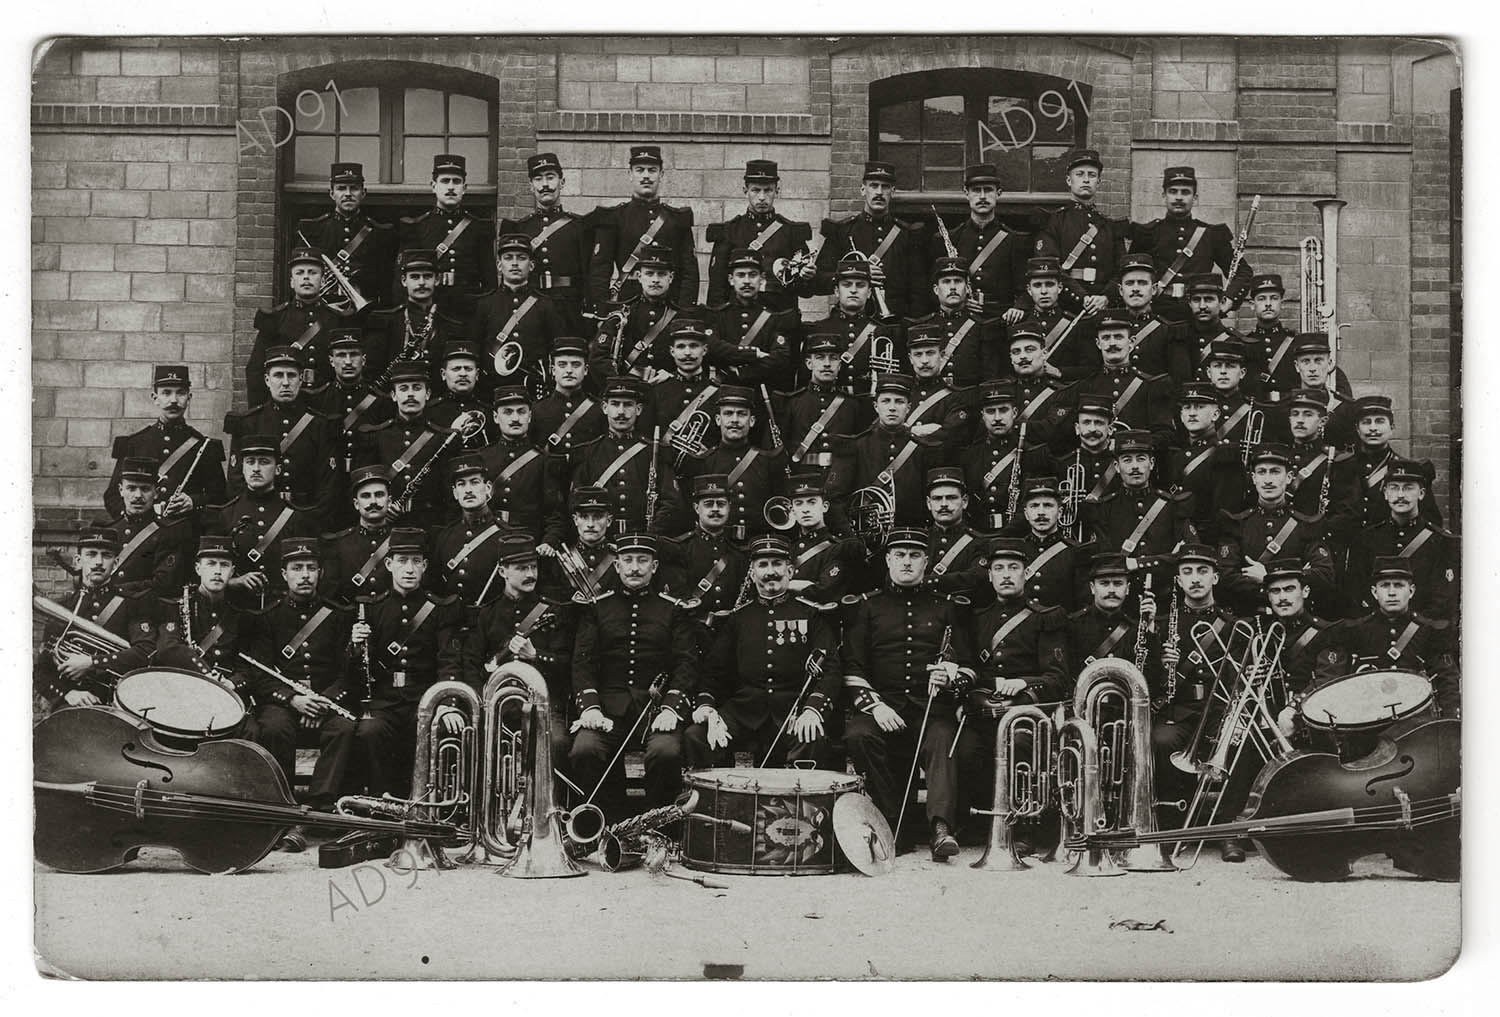 4 - Groupe de soldats musiciens du 74e régiment d'infanterie, carte  photographique. (032NUM019/004).